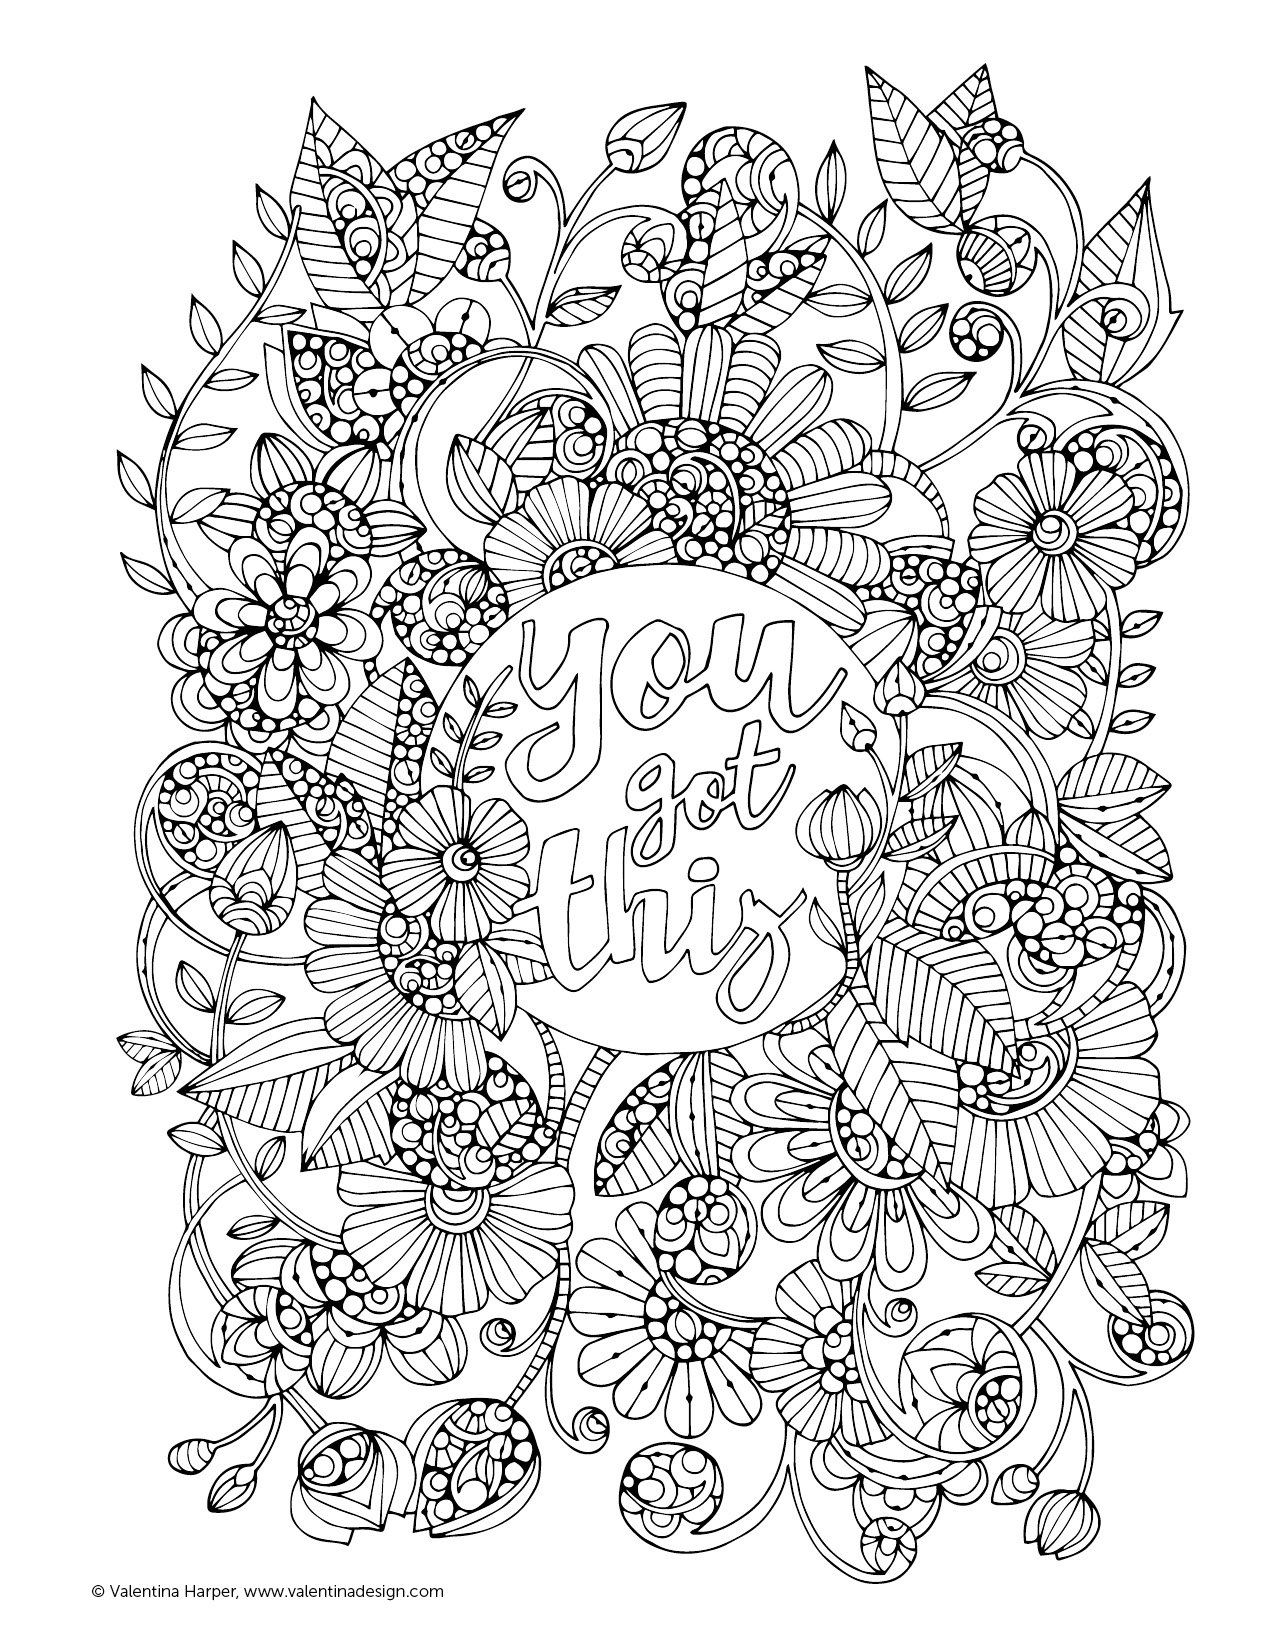 Coloring pages for donna flor - Creative Coloring Inspirations Too Art Activity Pages To Relax And Enjoy Amazon